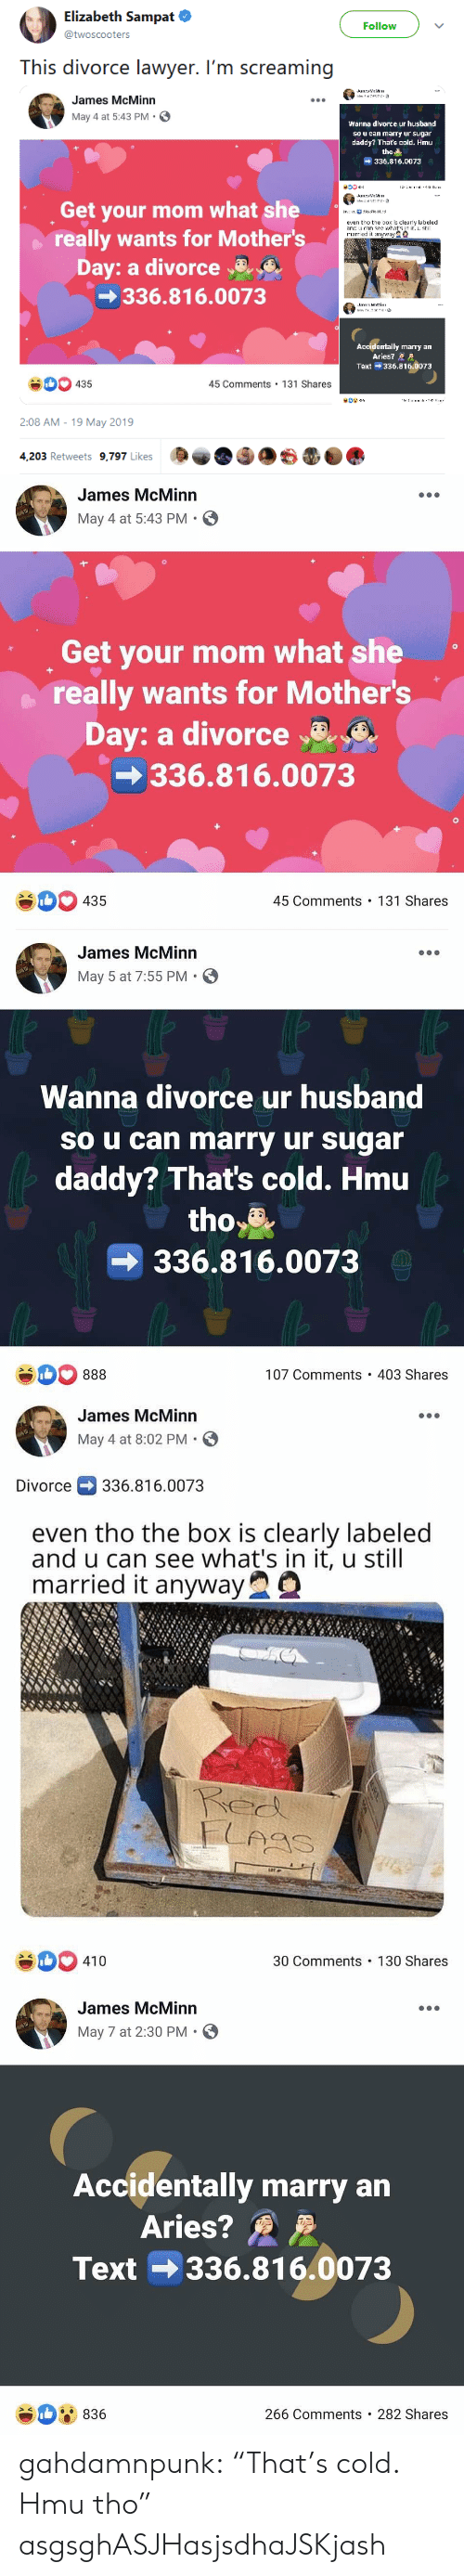 "Mother's Day: Elizabeth Sampat  Follow  @twoscooters  This divorce lawyer. I'm screaming  James McMinn  May 4 at 5:43 PM.  Wanna dlvorce ur husband  so u can marry ur sugar  daddy? That's cold. Hmu  ャ  tho  336.816.0073  Get your mom what she  even tho te  clealebeled  really wants for Mother's  Day: a divorceaE  336.816.0073  lly marry an  Aries? A  Text 336.816.0073  Ac  0435  45 Comments 131 Shares  2:08 AM -19 May 2019  4,203 Retweets 9,797 Likes   James McMinn  May 4 at 5:43 PM.  Get your mom what she  really wants for Mother's  Day: a divorce  336.816.0073  #00 435  45 Comments 131 Shares   James McMinn  May 5 at 7:55 PM  Wanna divorce ur husband  so u can marry ur sugar  daddy? That's cold. Hmu  tho*  336.816.0073  107 Comments 403 Shares   James McMinn  May 4 at 8:02 PM.  Divorce336.816.0073  even tho the box is clearly labeled  and u can see what's in it, u still  married it anywayQ  xNx  30 Comments 130 Shares  410   James McMinn  May 7 at 2:30 PM S  Accidentally marry an  Aries?  Text 336.816.0073  836  266 Comments 282 Shares gahdamnpunk:  ""That's cold. Hmu tho"" asgsghASJHasjsdhaJSKjash"